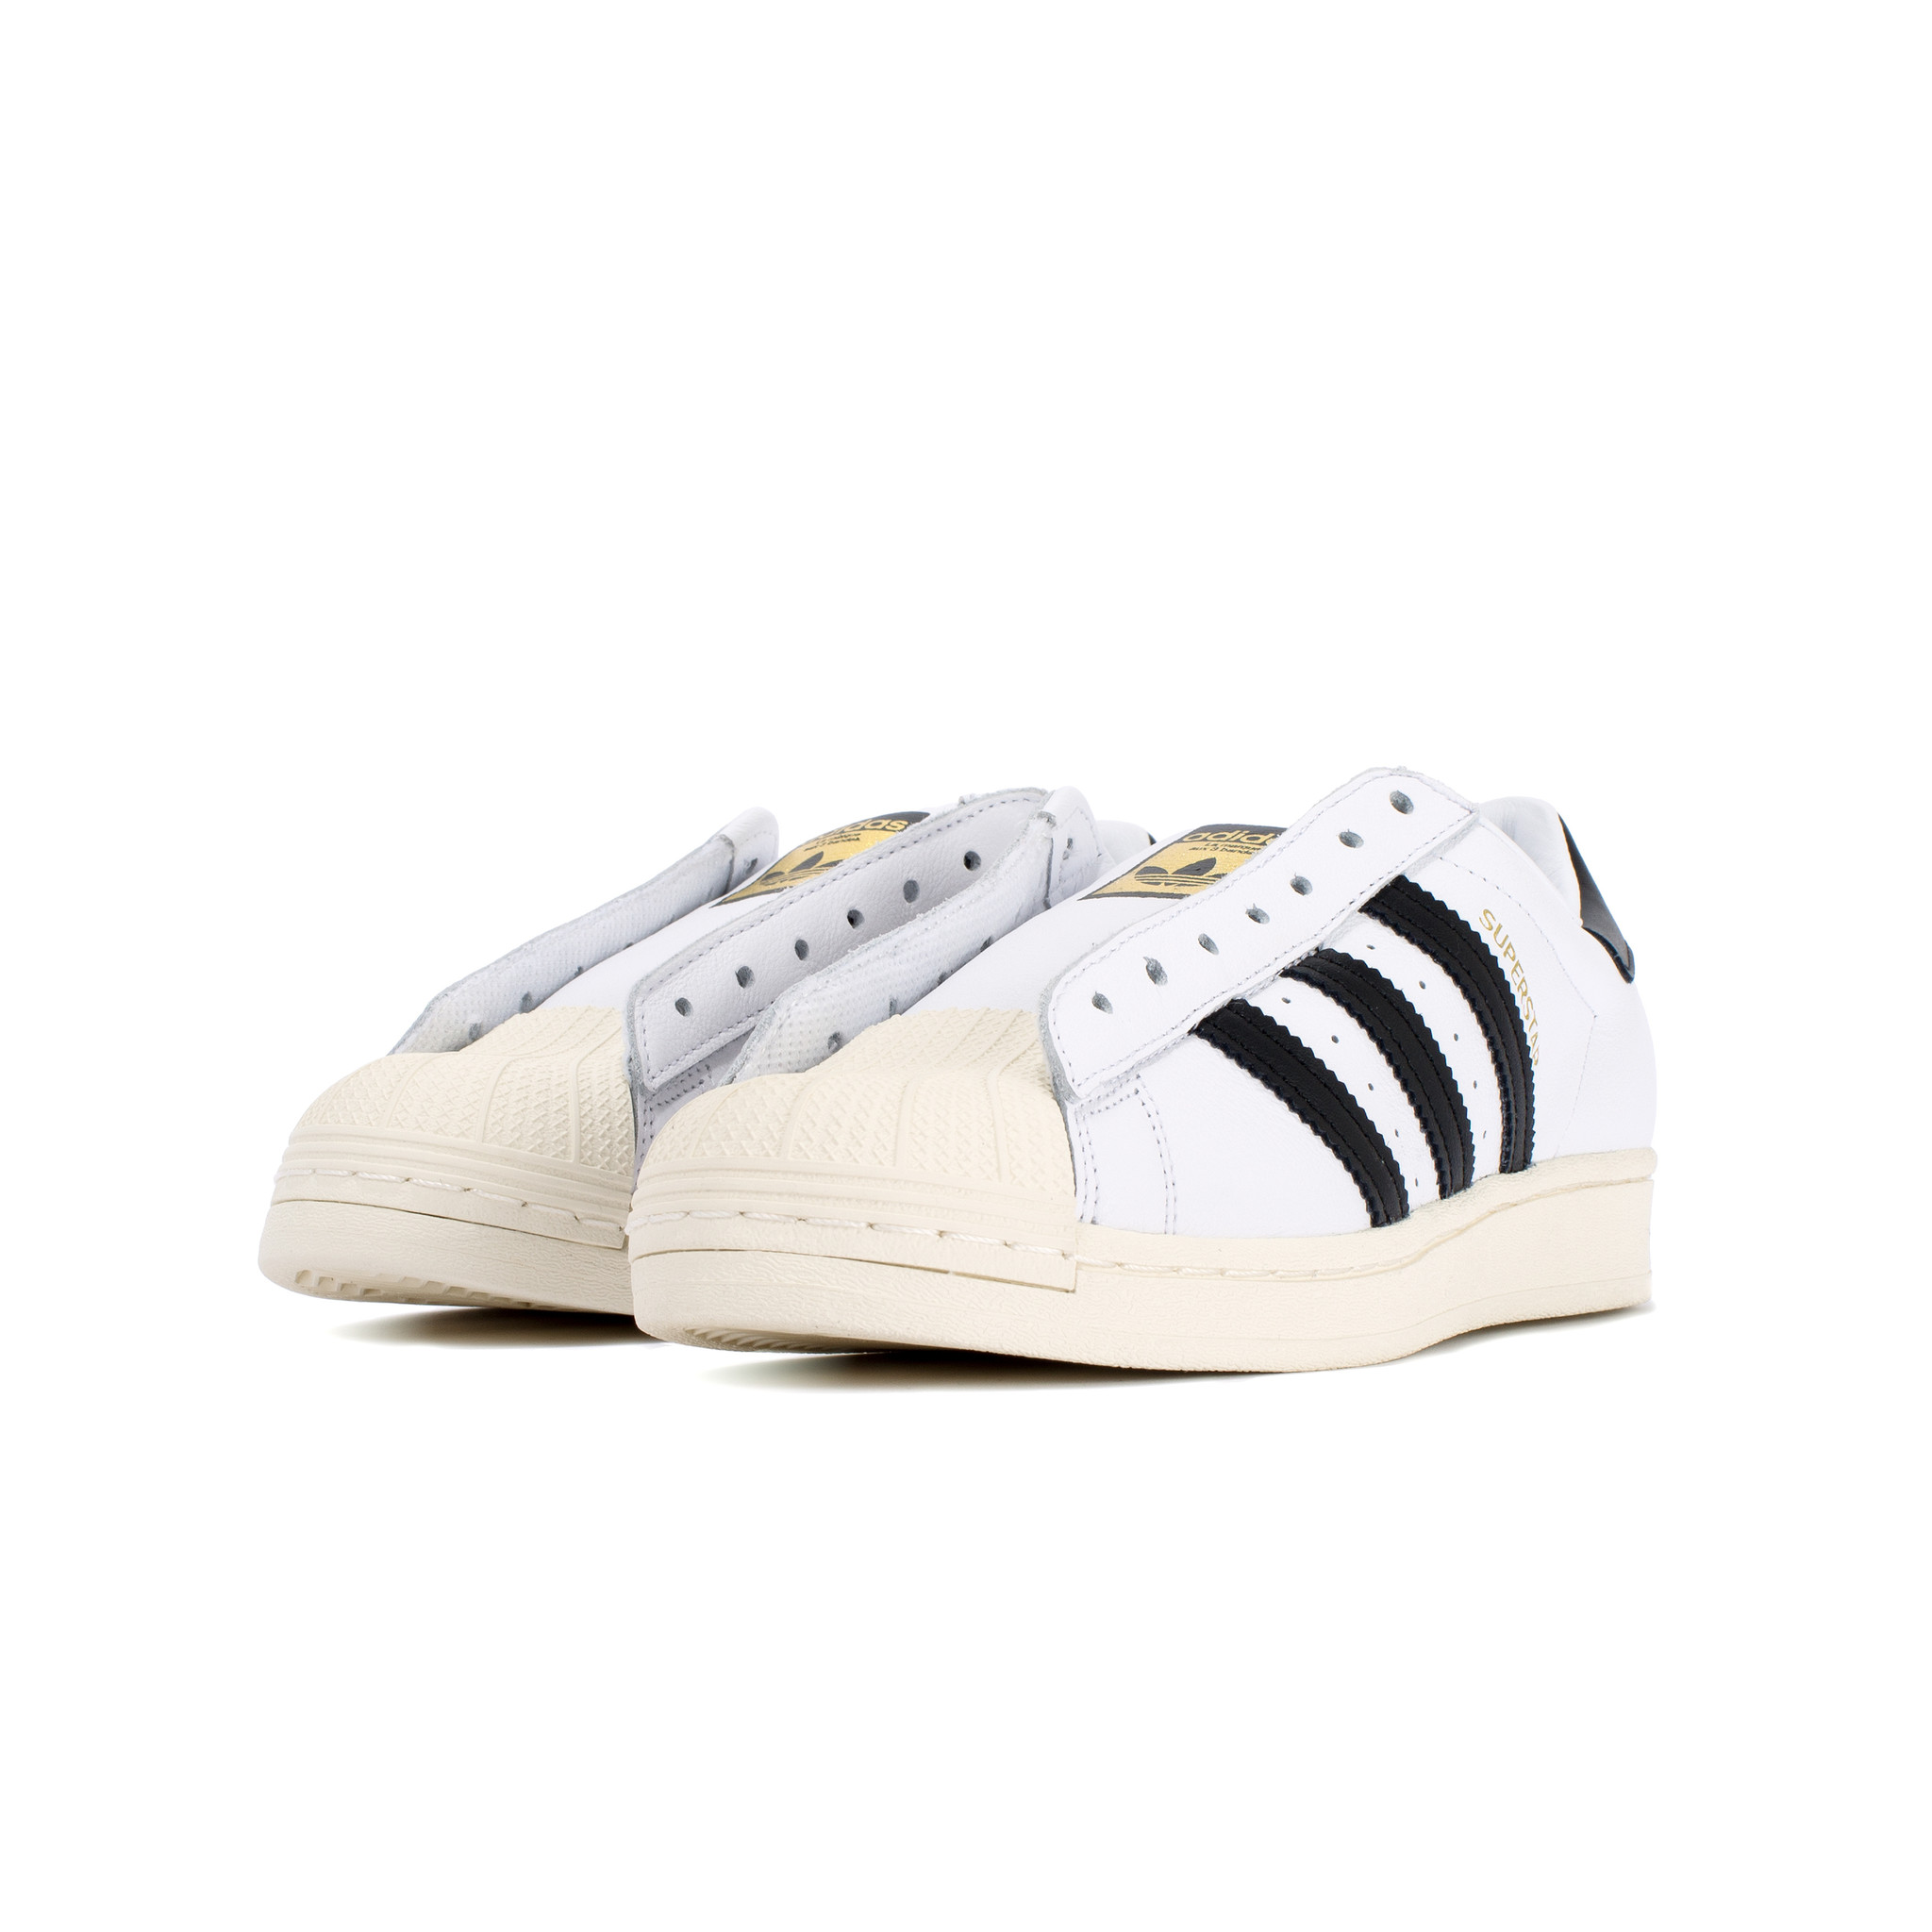 adidas superstar white special edition